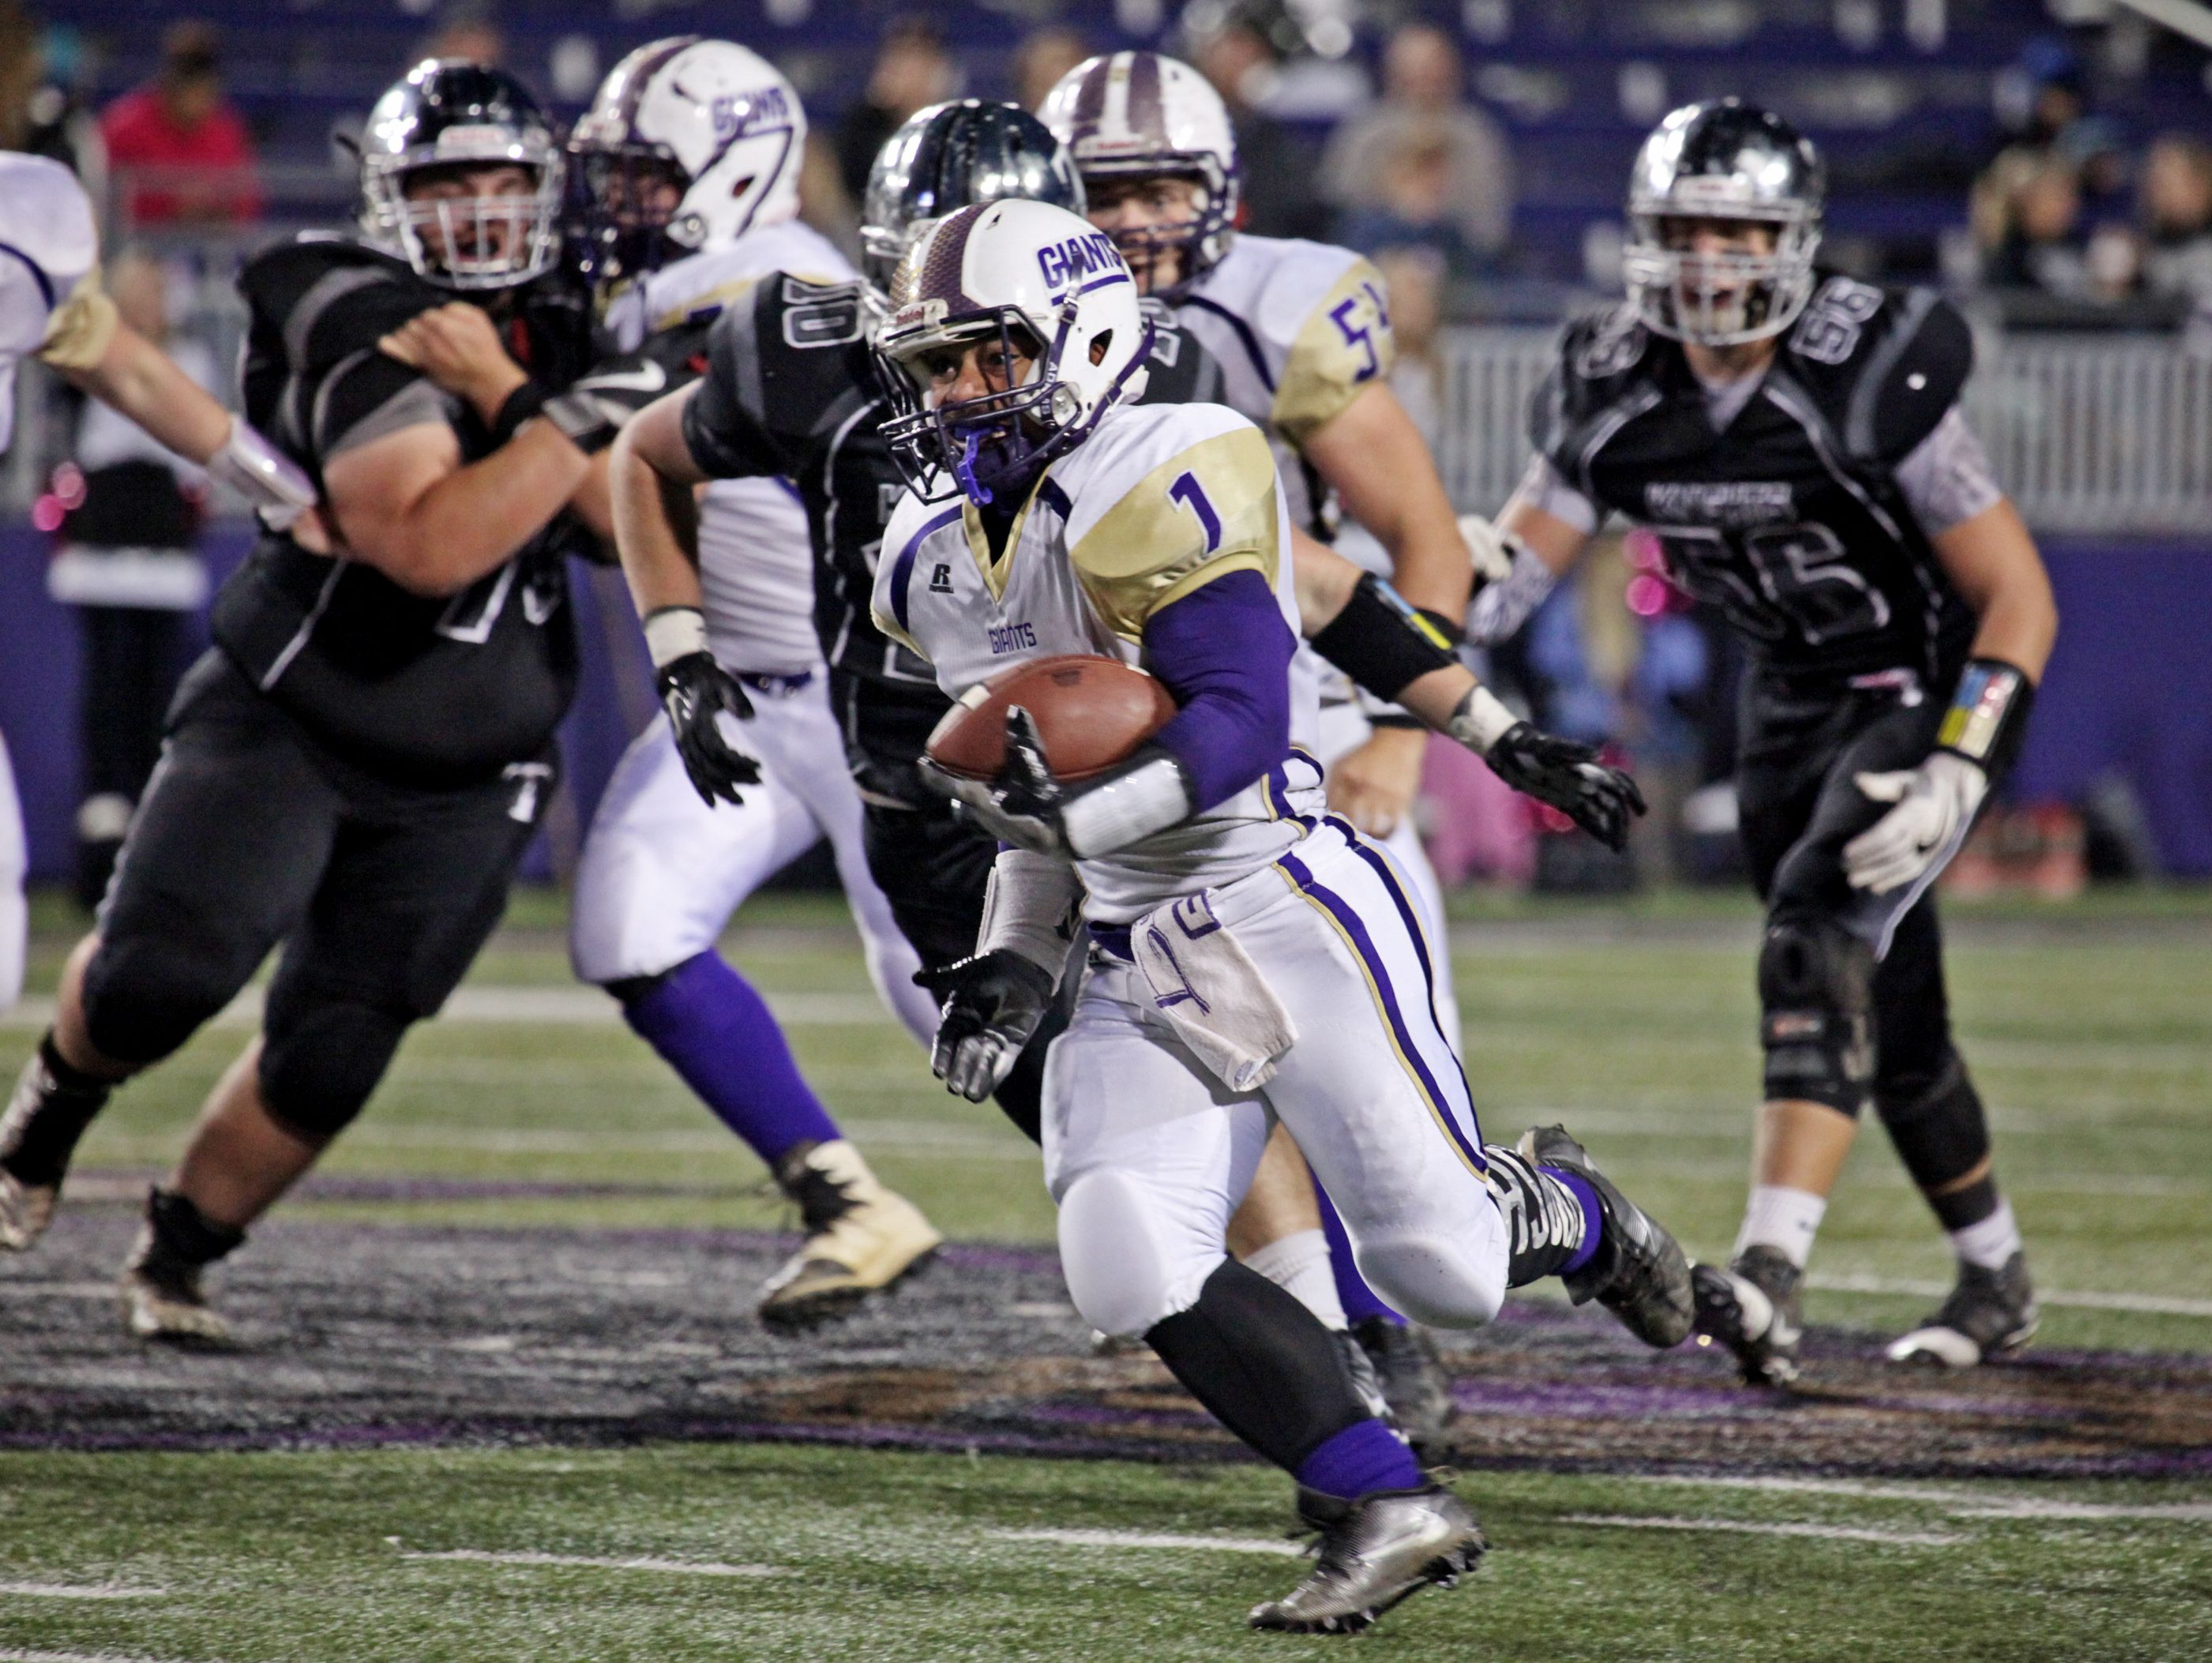 Waynesboro's Marendon Jones runs the ball in for a touchdown during the first half of the game against Turner Ashby on Friday, Oct. 14, 2016 at James Madison University's Bridgeforth Stadium in Harrisonburg.